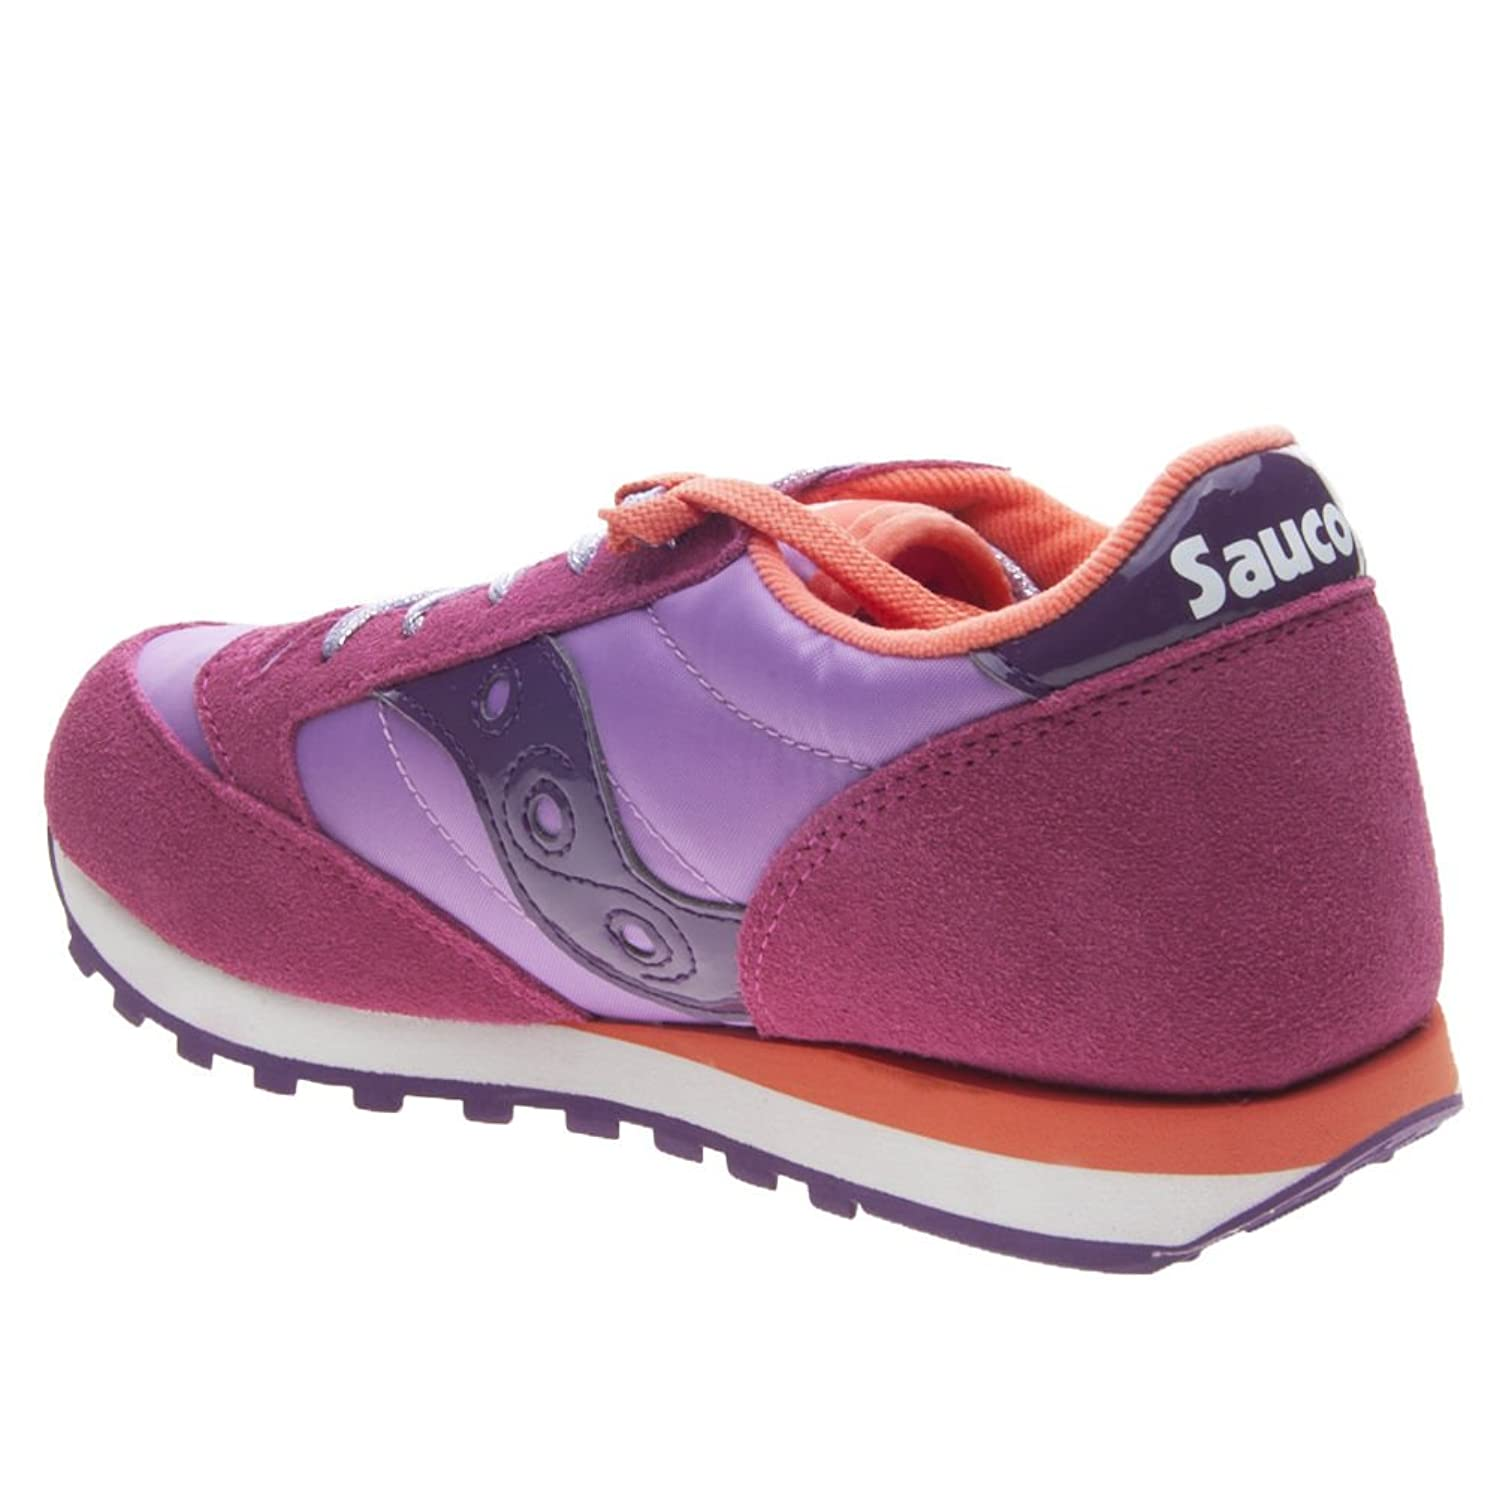 Saucony Chaussures Fille Jazz Femme Lacets Baskets Sy56276 Originale Fuchsia Vio YGqHy6Xk8